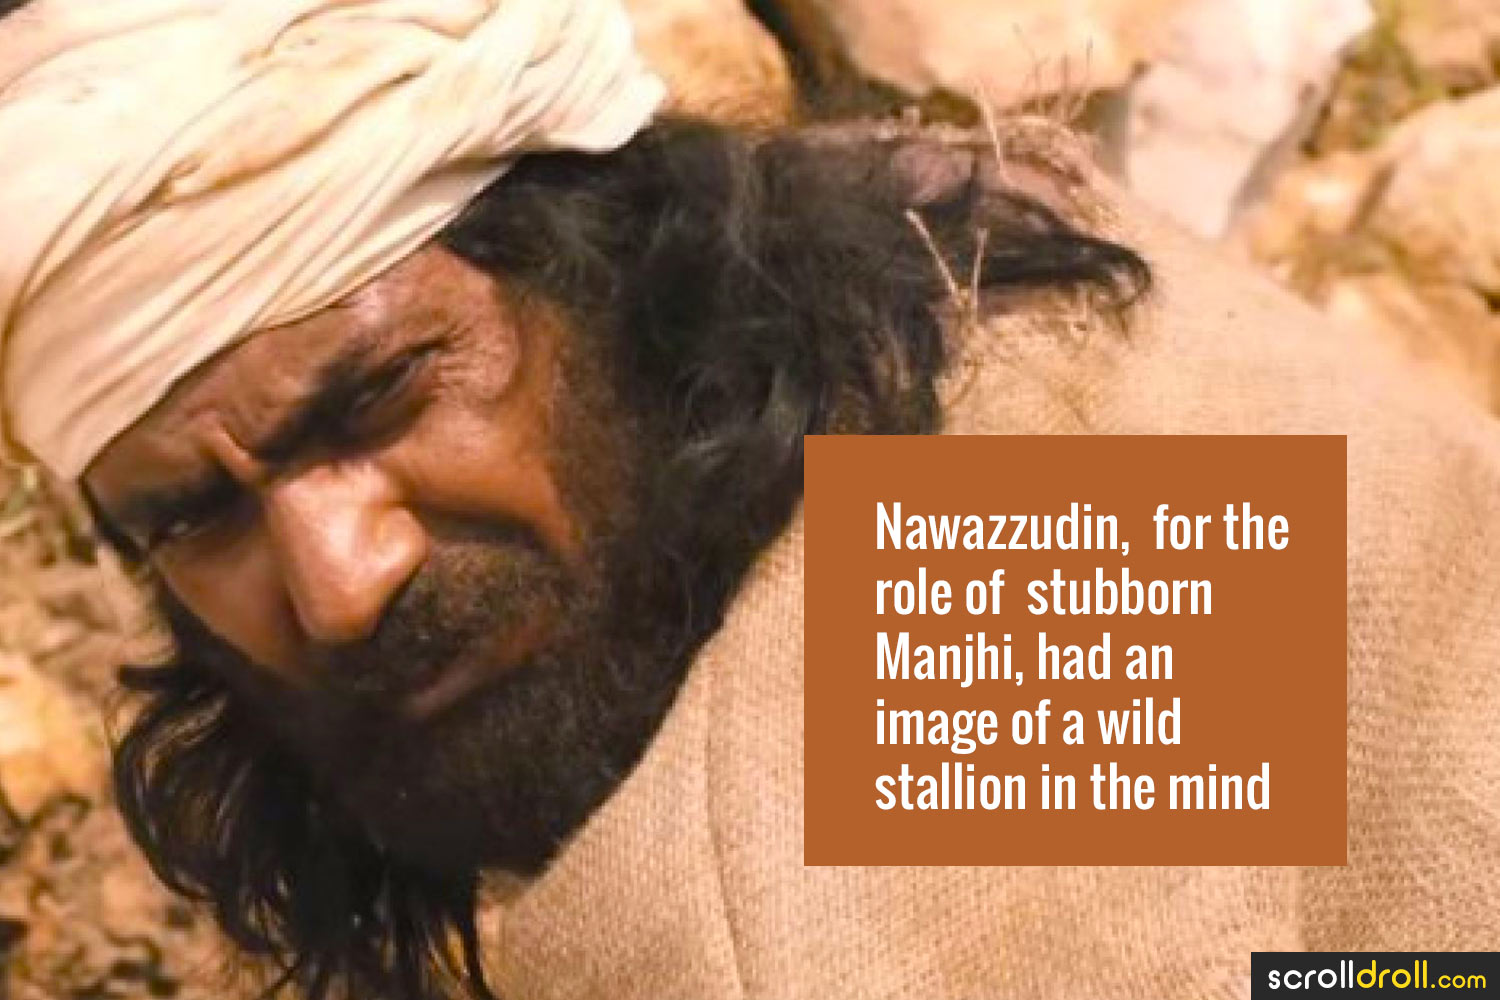 Facts about Nawazuddin Siddique-Nawazuddin,for the role of stubborn manjhi,had an image of awild stallion in the mind